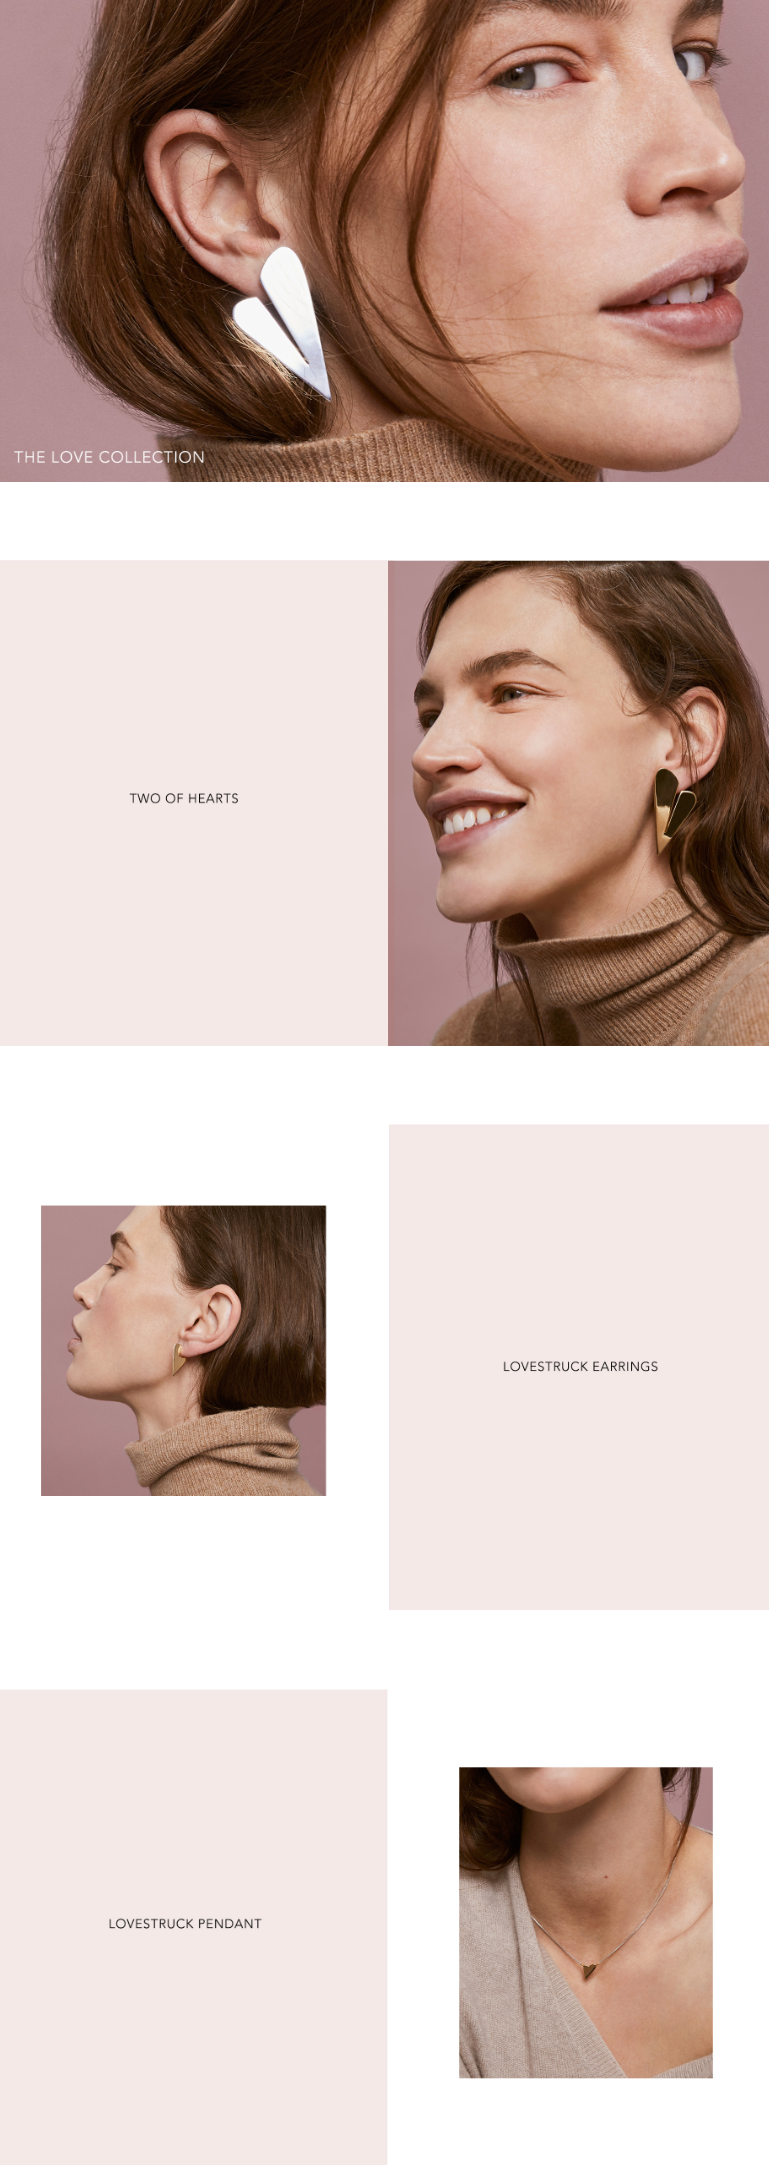 These pieces were made to remind you to lead with love and compassionin day-to-day interactions wi...